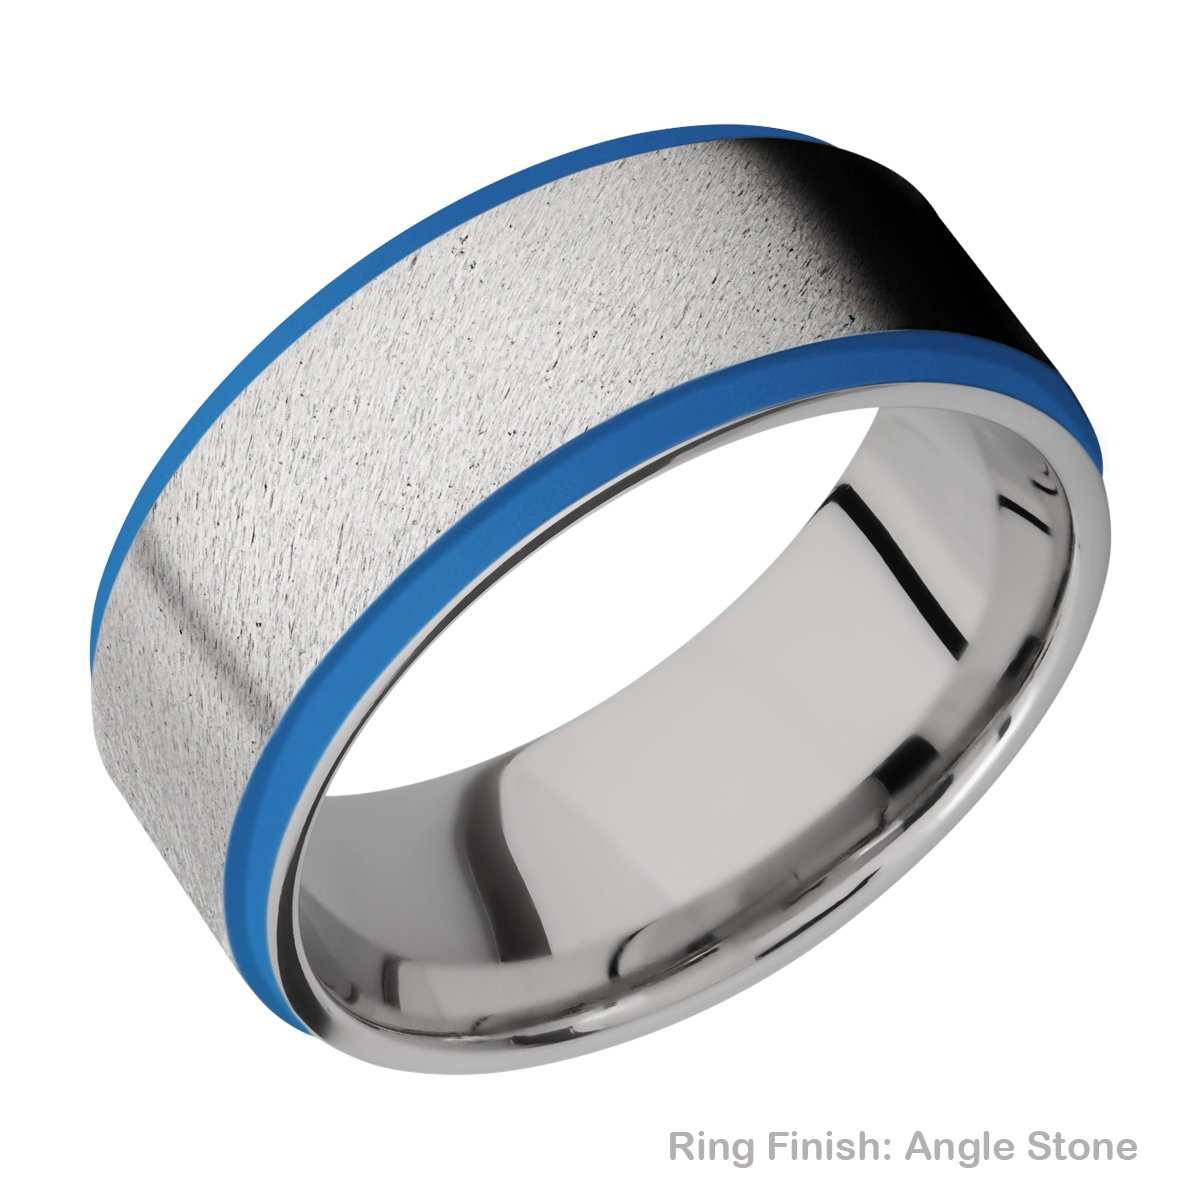 Lashbrook CC10FGE21EDGE/A/CERAKOTE Cobalt Chrome Wedding Ring or Band Alternative View 9